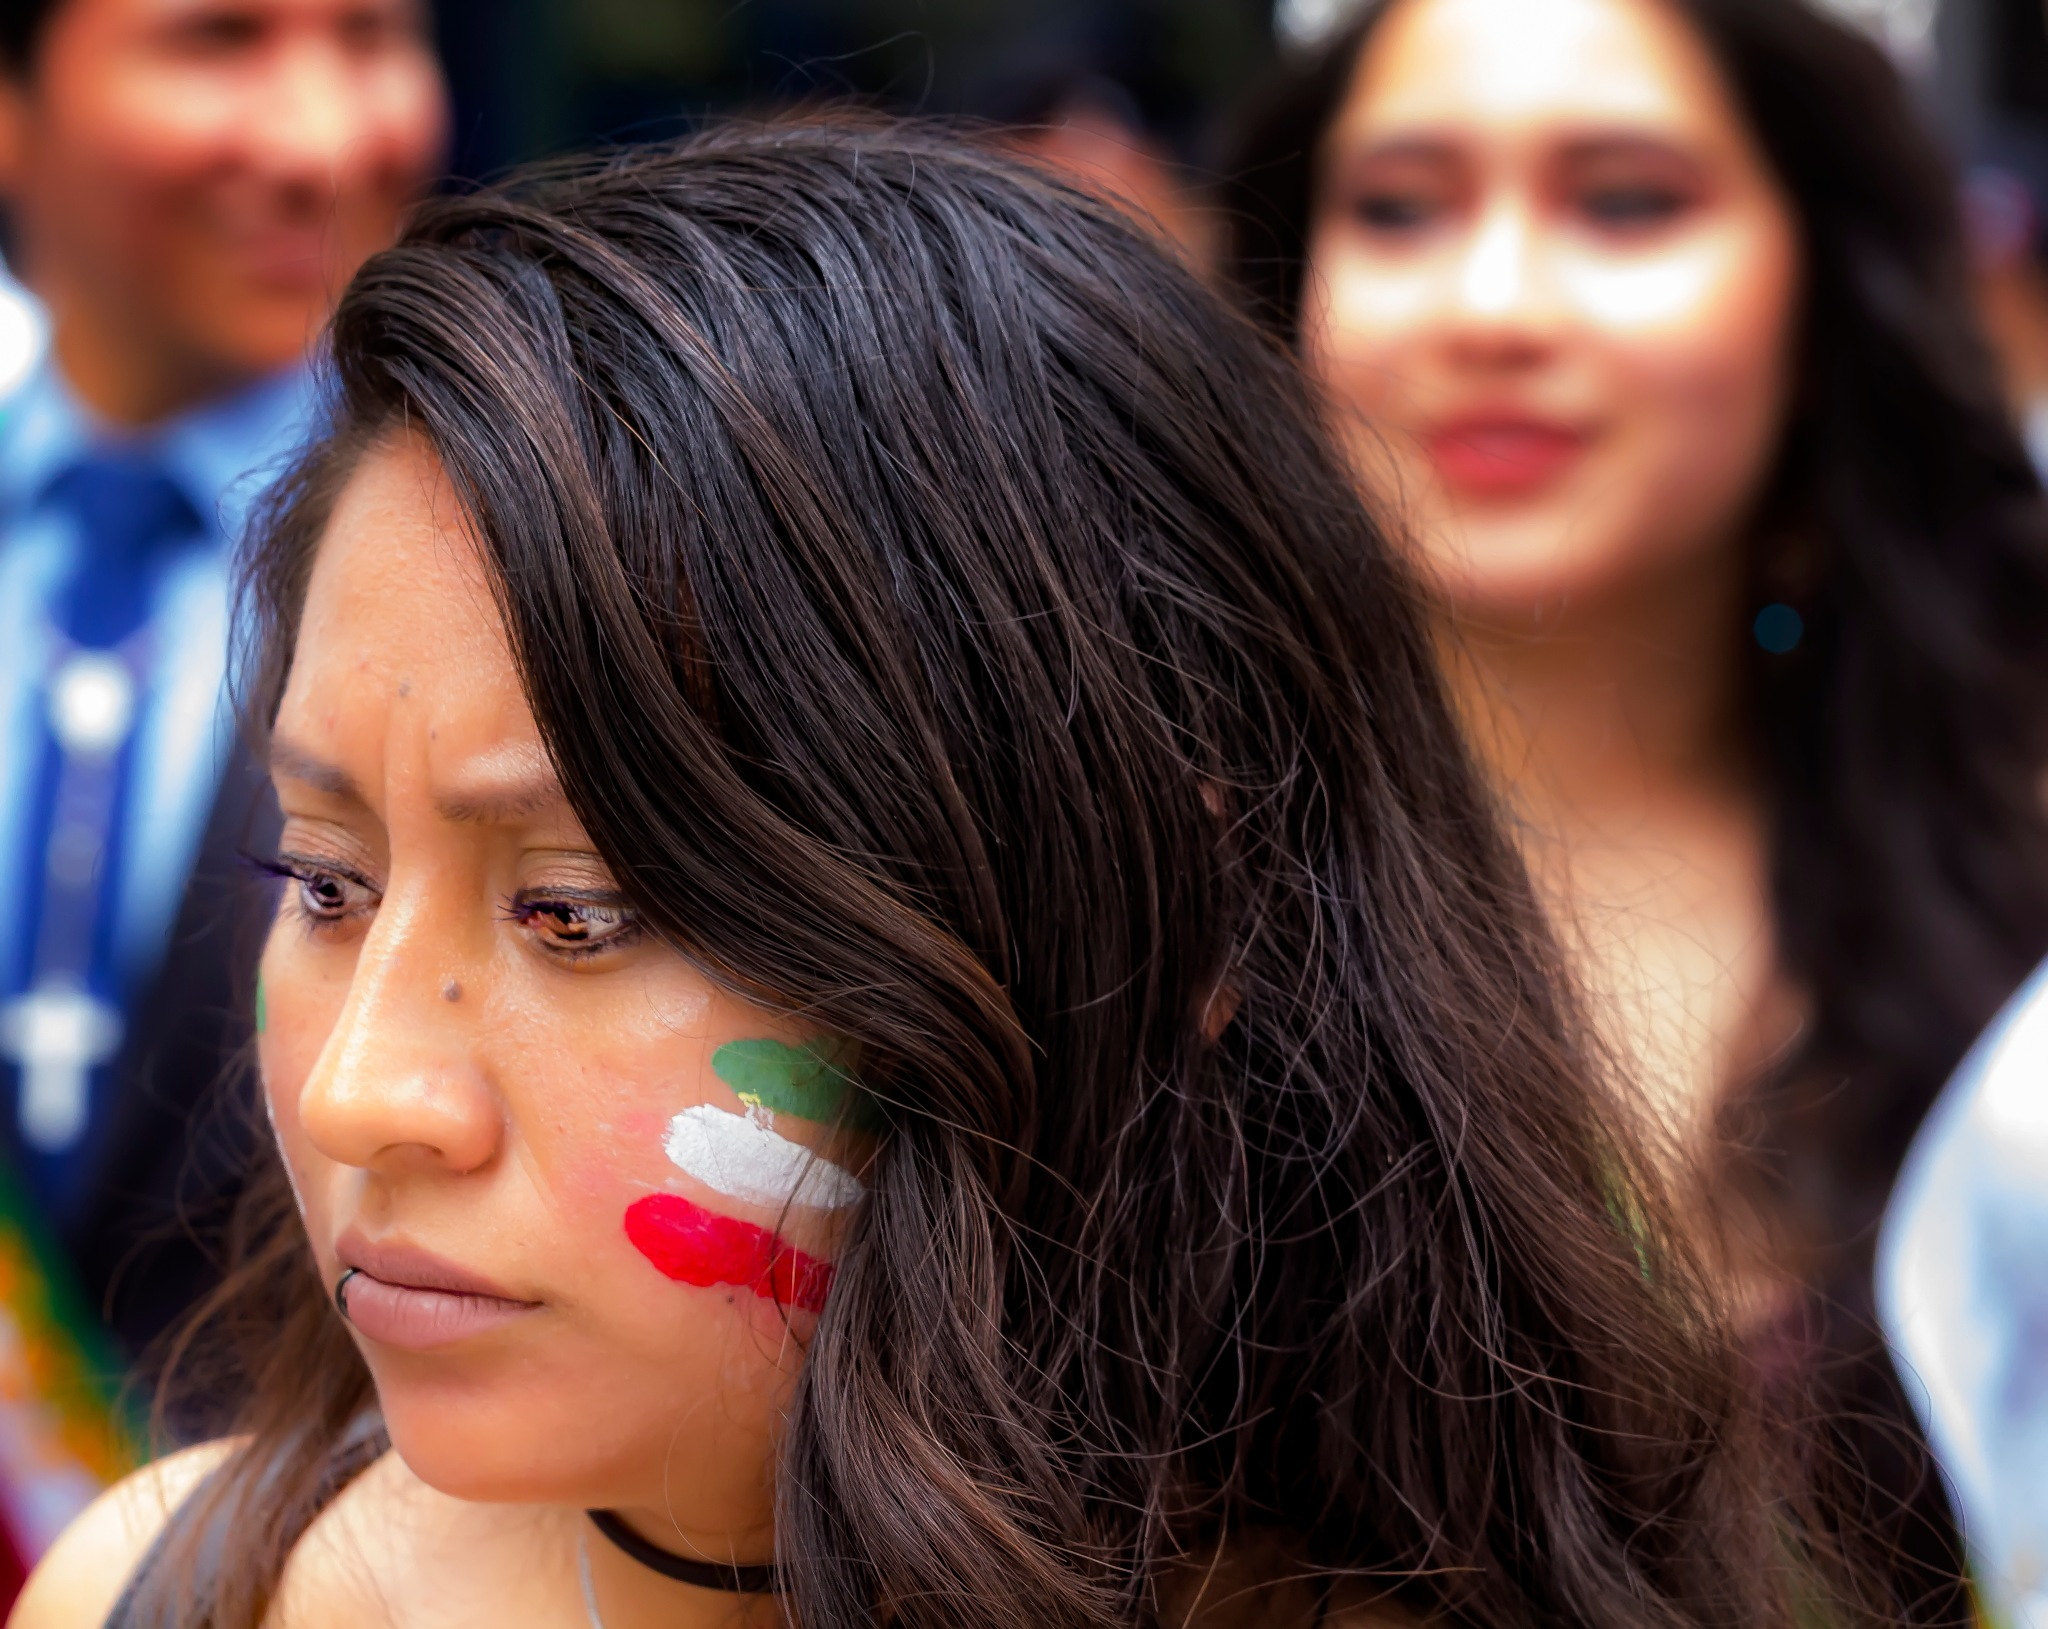 Mexican Day Parade NYC 2016 Mexican Flag Facepaint by robertullmann